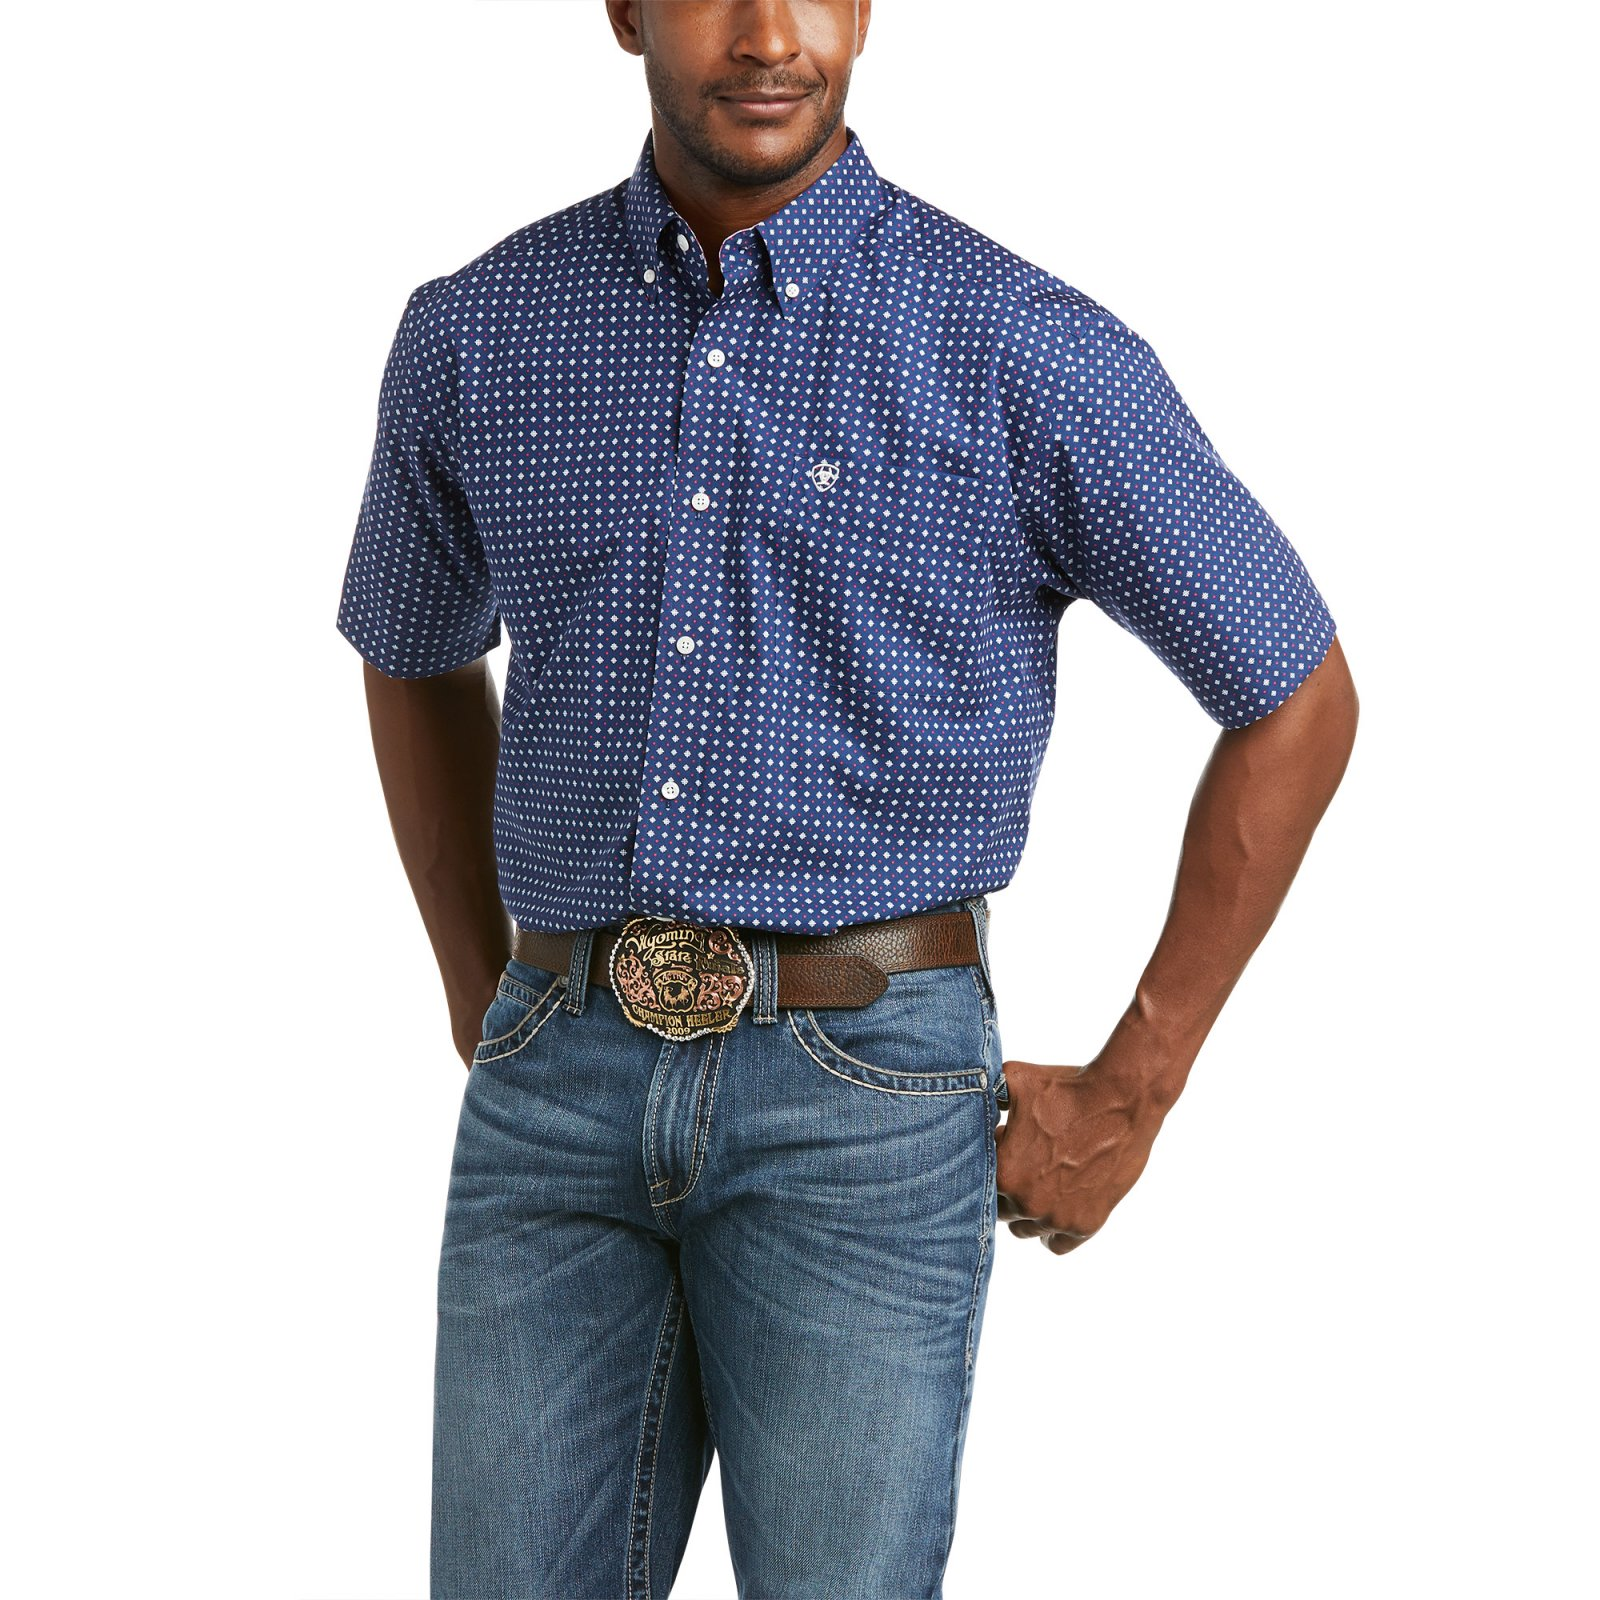 Wrinkle Free Sunny Shirt from Ariat